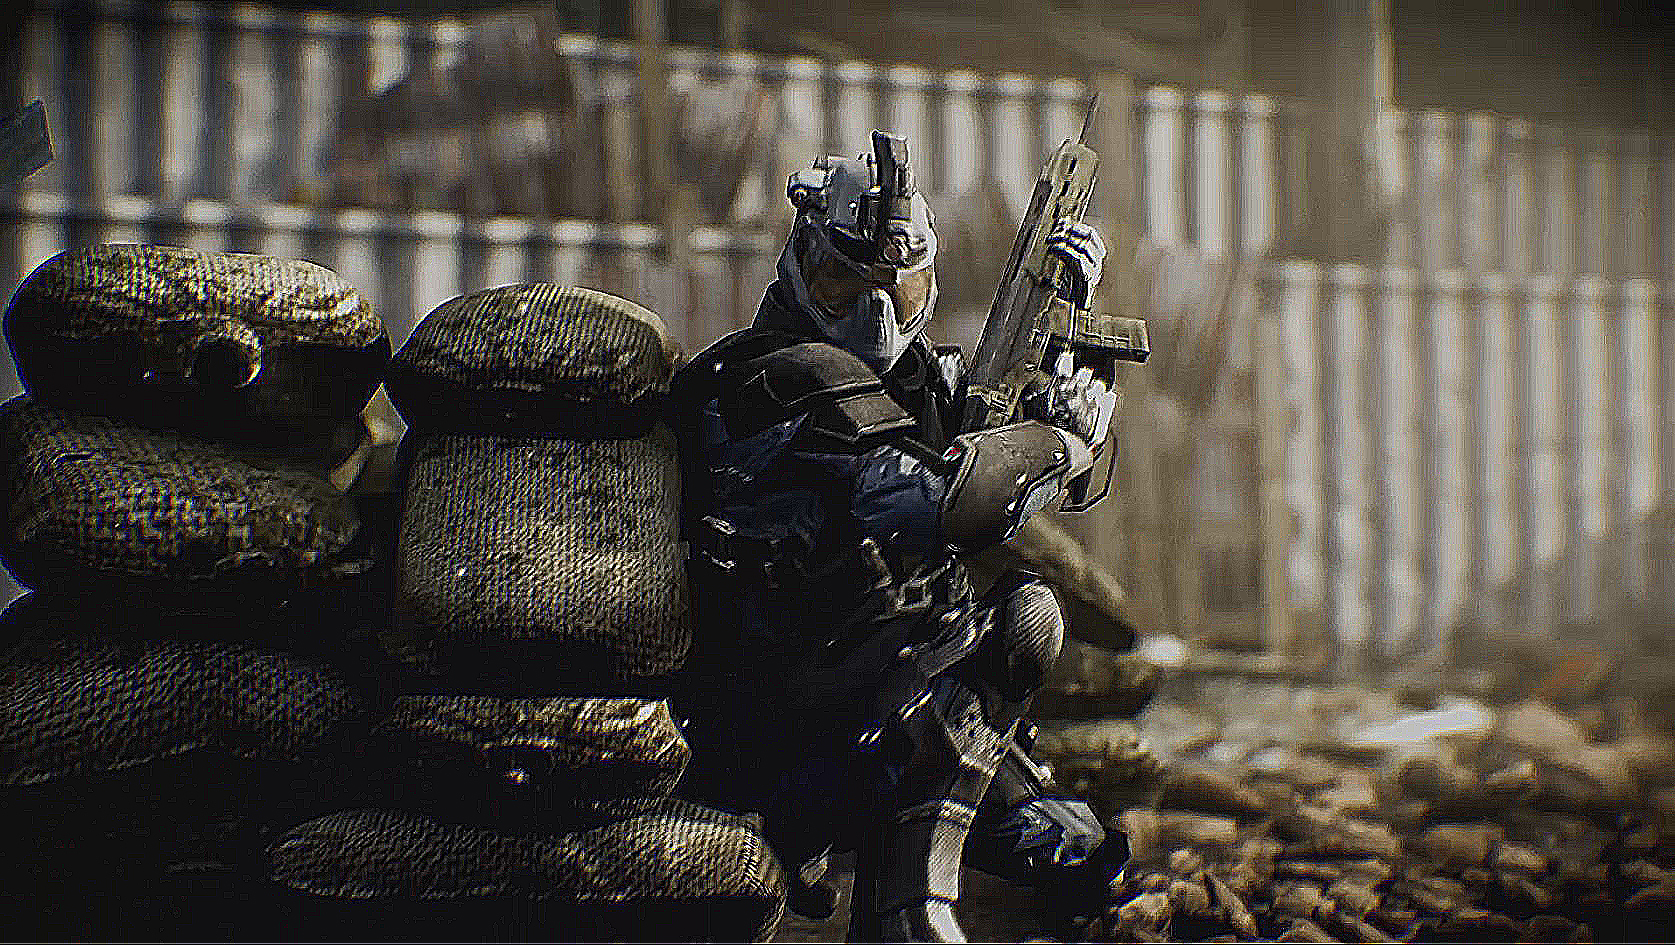 [Image: warface_blackwood_soldier_by_bacurok-d6cytoy.jpg]